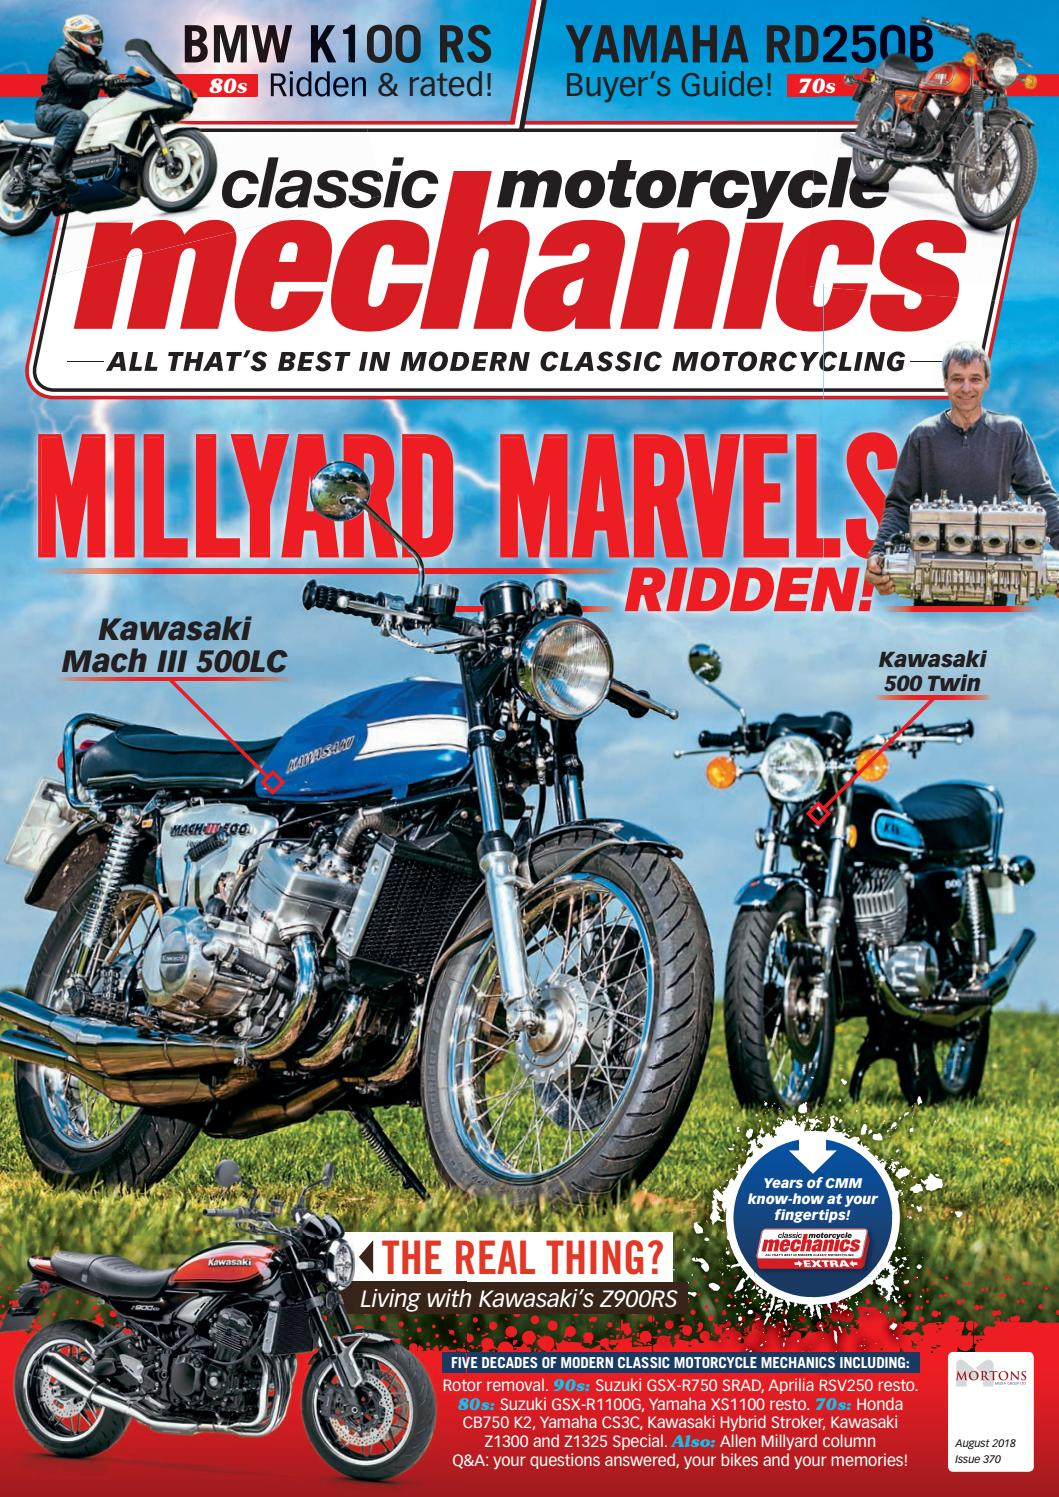 Classic Motorcycle Mechanics August 2018 By Mortons Media Group Ltd Case Cx160 Ac Wiring Diagram Issuu